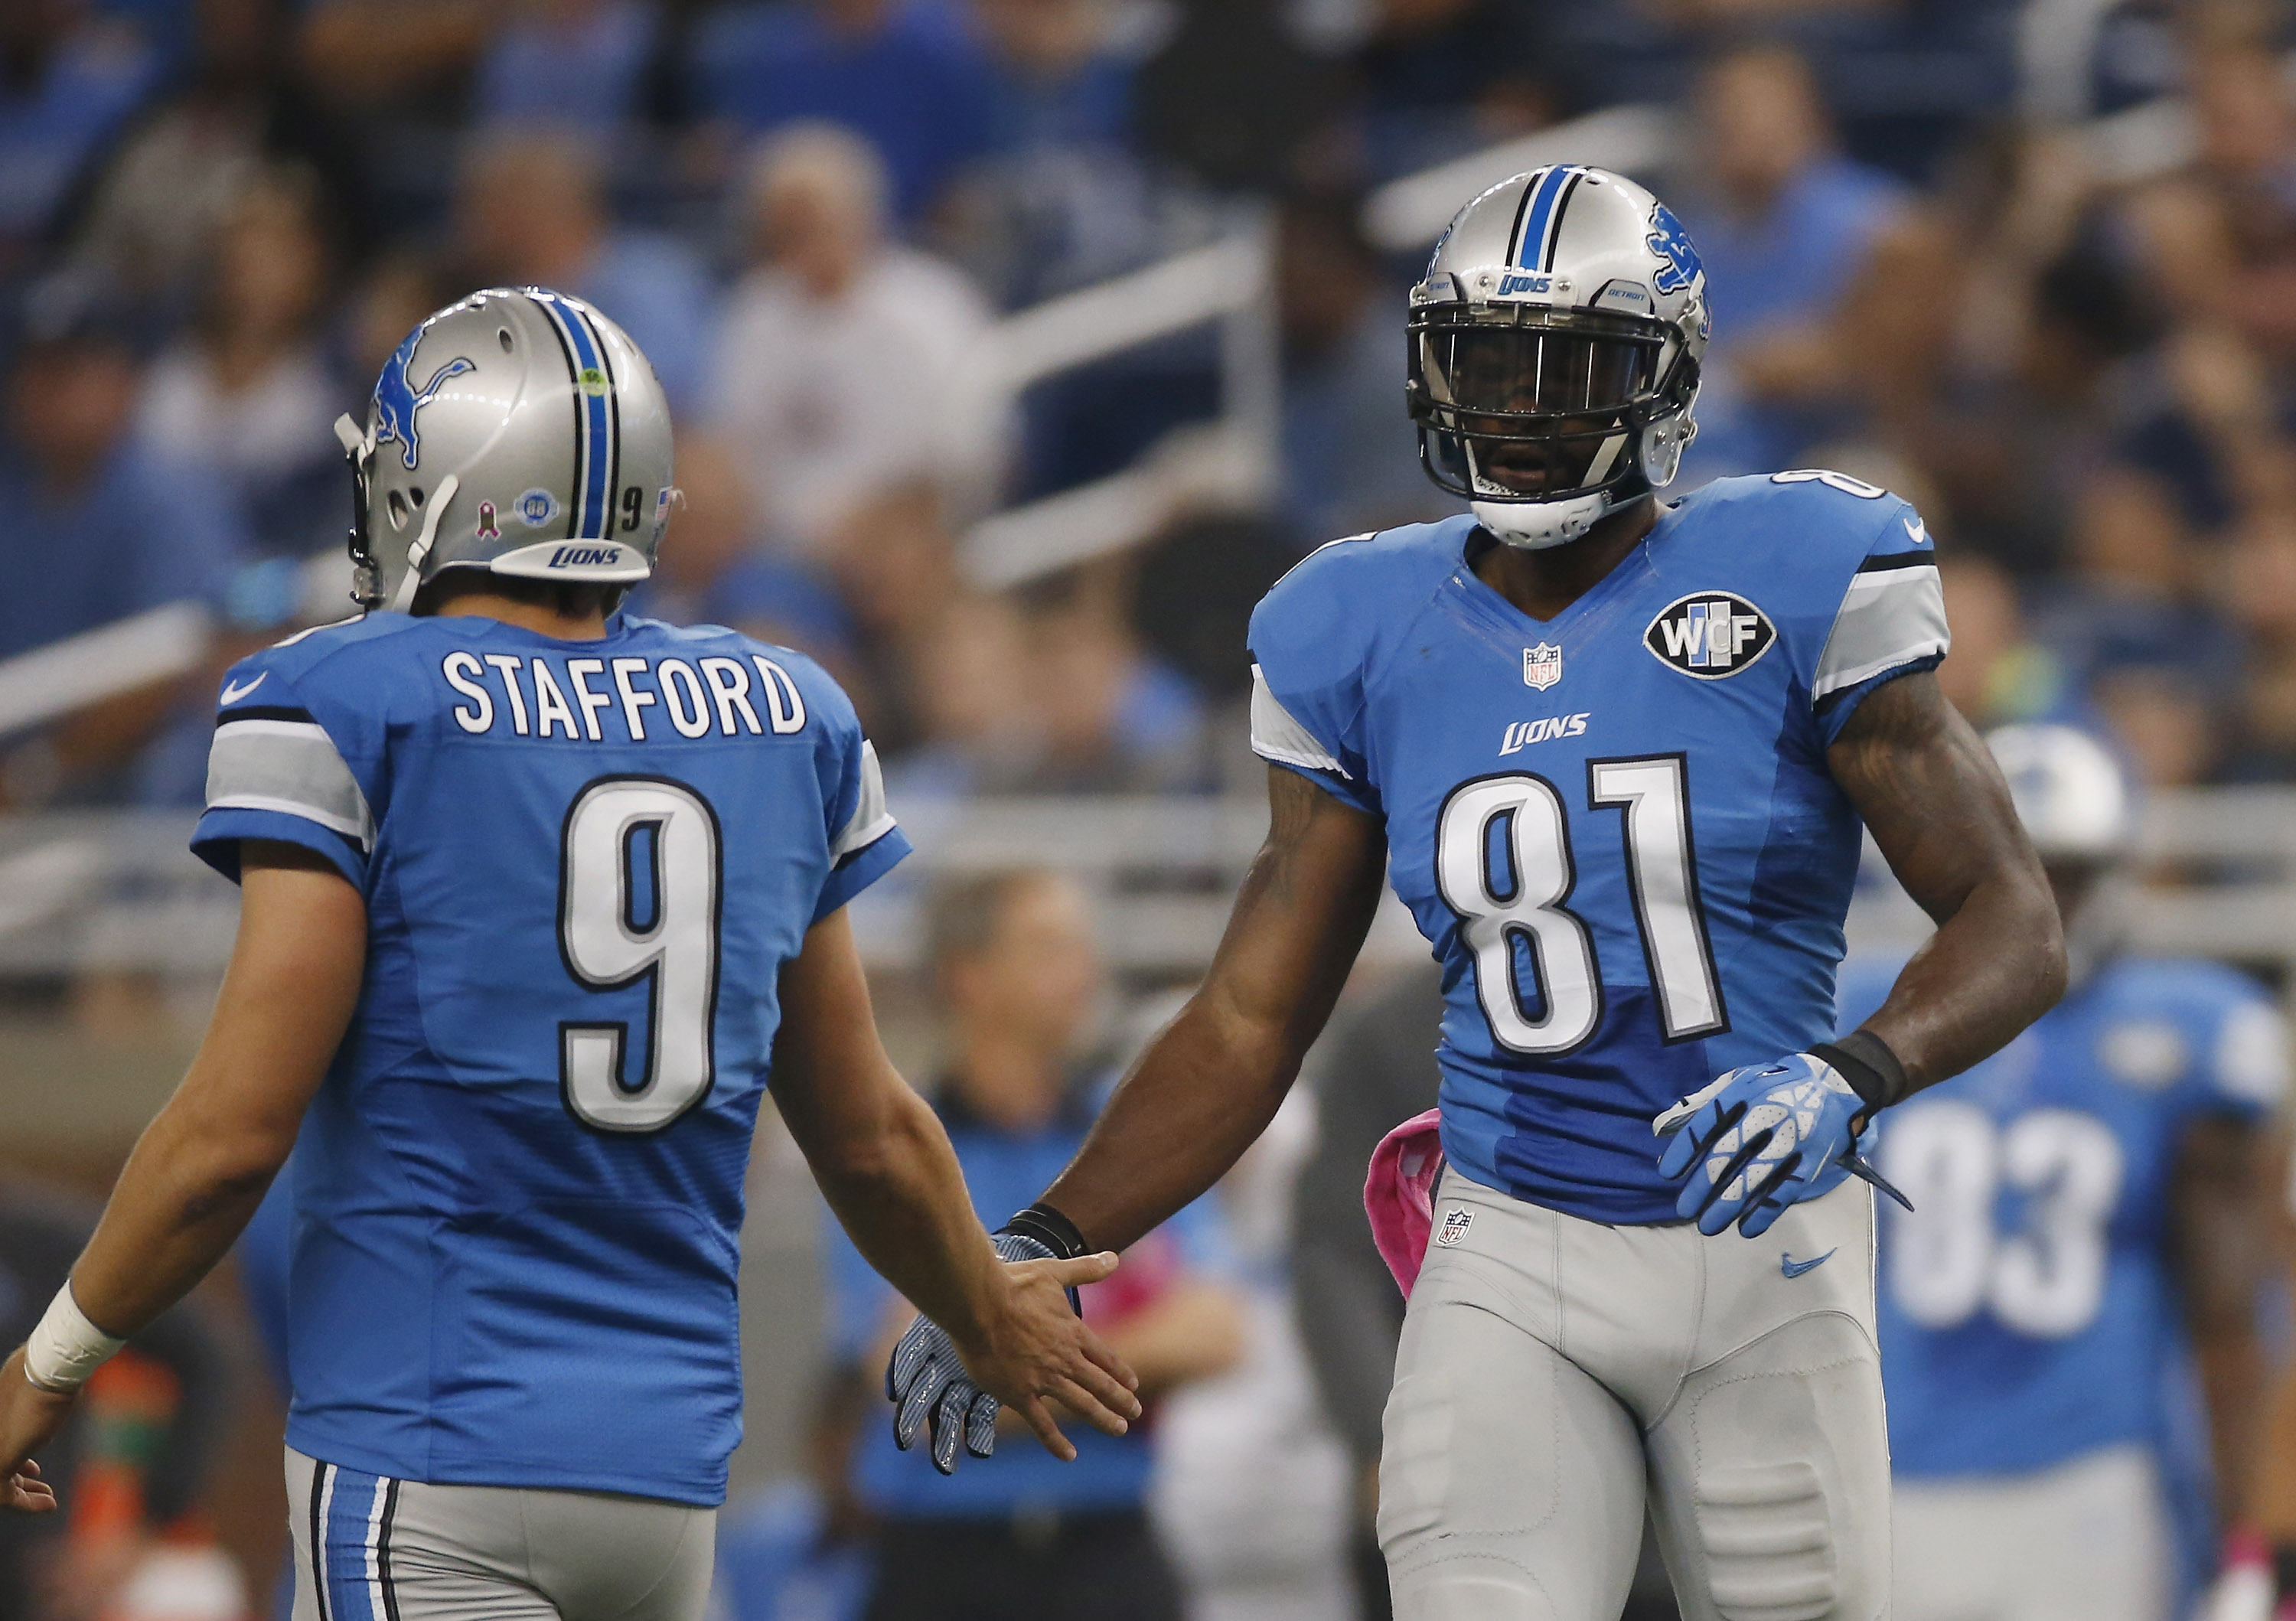 Matthew-stafford-and-calvin-johnson_ppg54lopl9719waxh58cja30